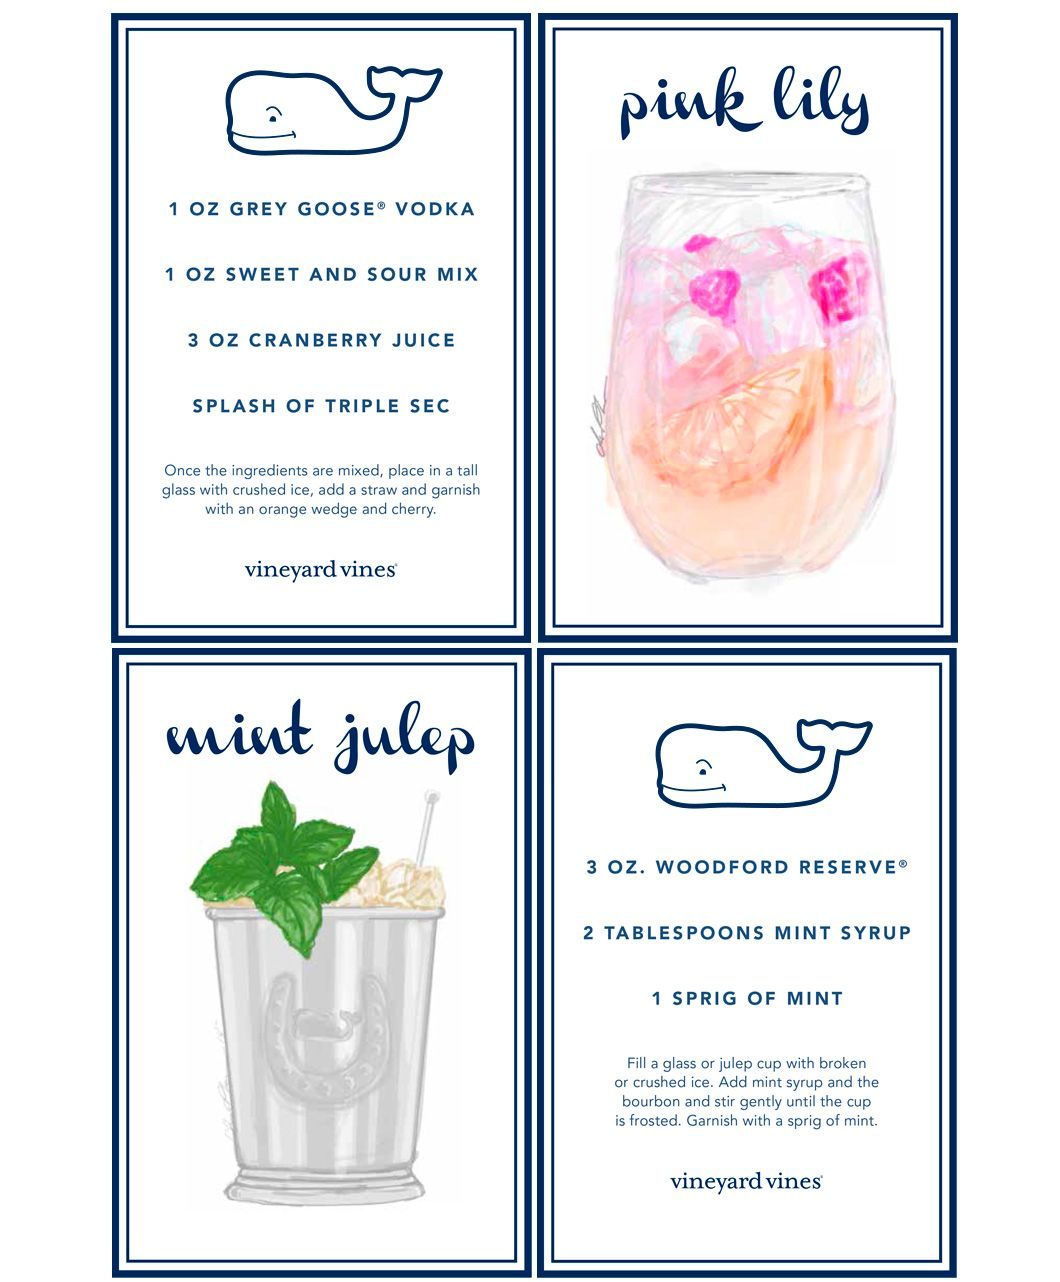 Vineyard Vines, EDSFTG, Kentucky Derby